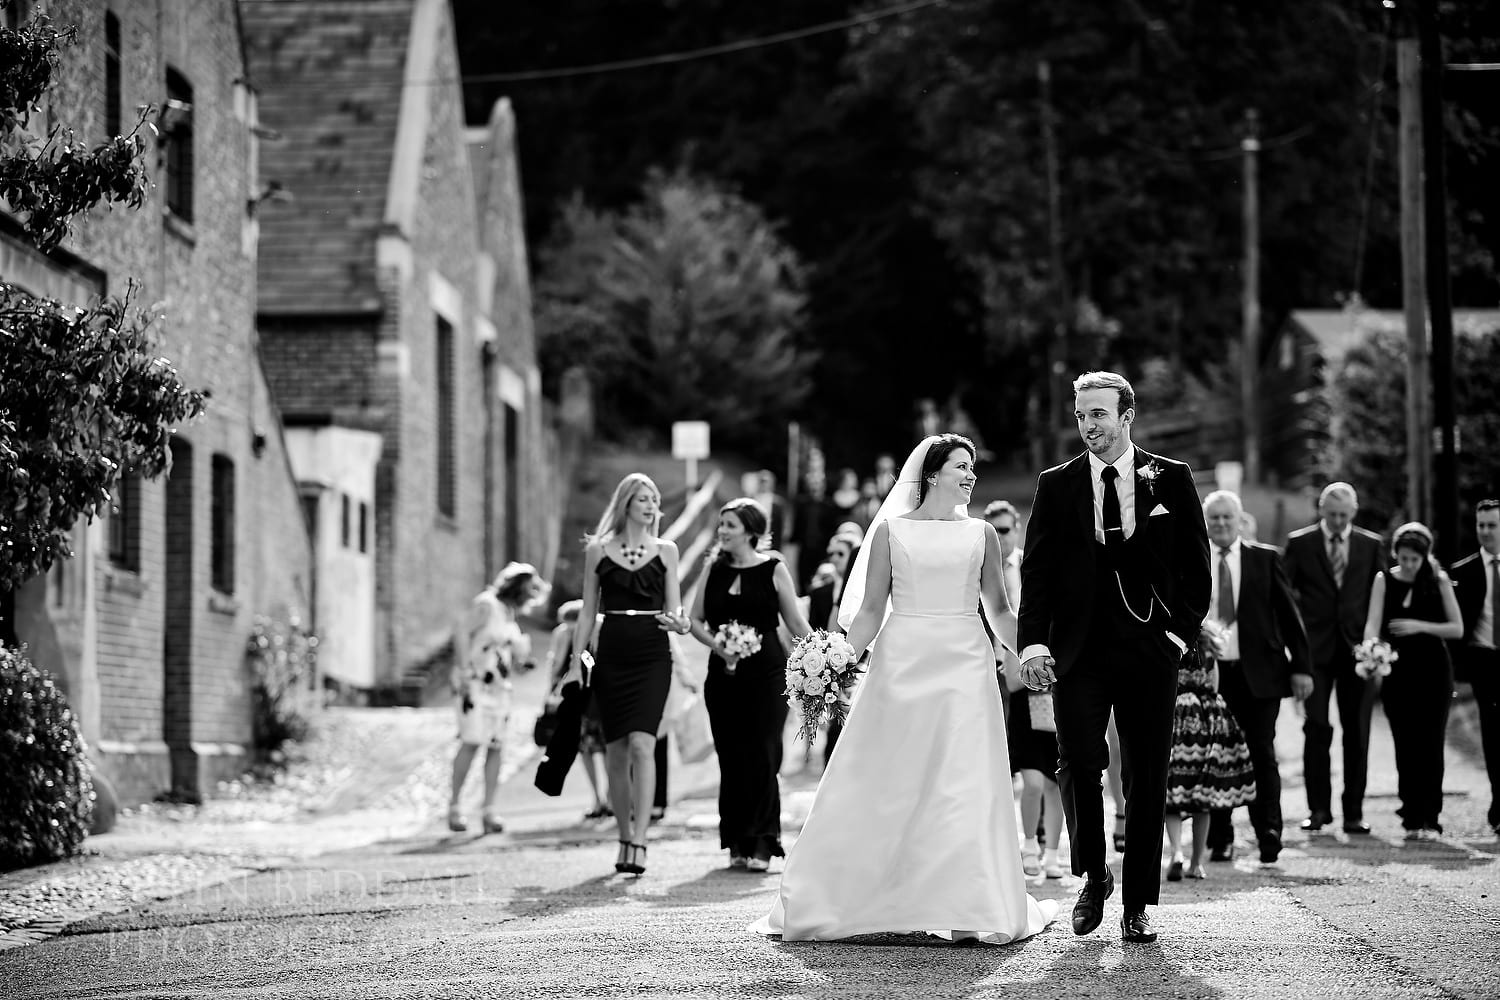 Brie and groom lead the guests to the reception at Folkington Manor